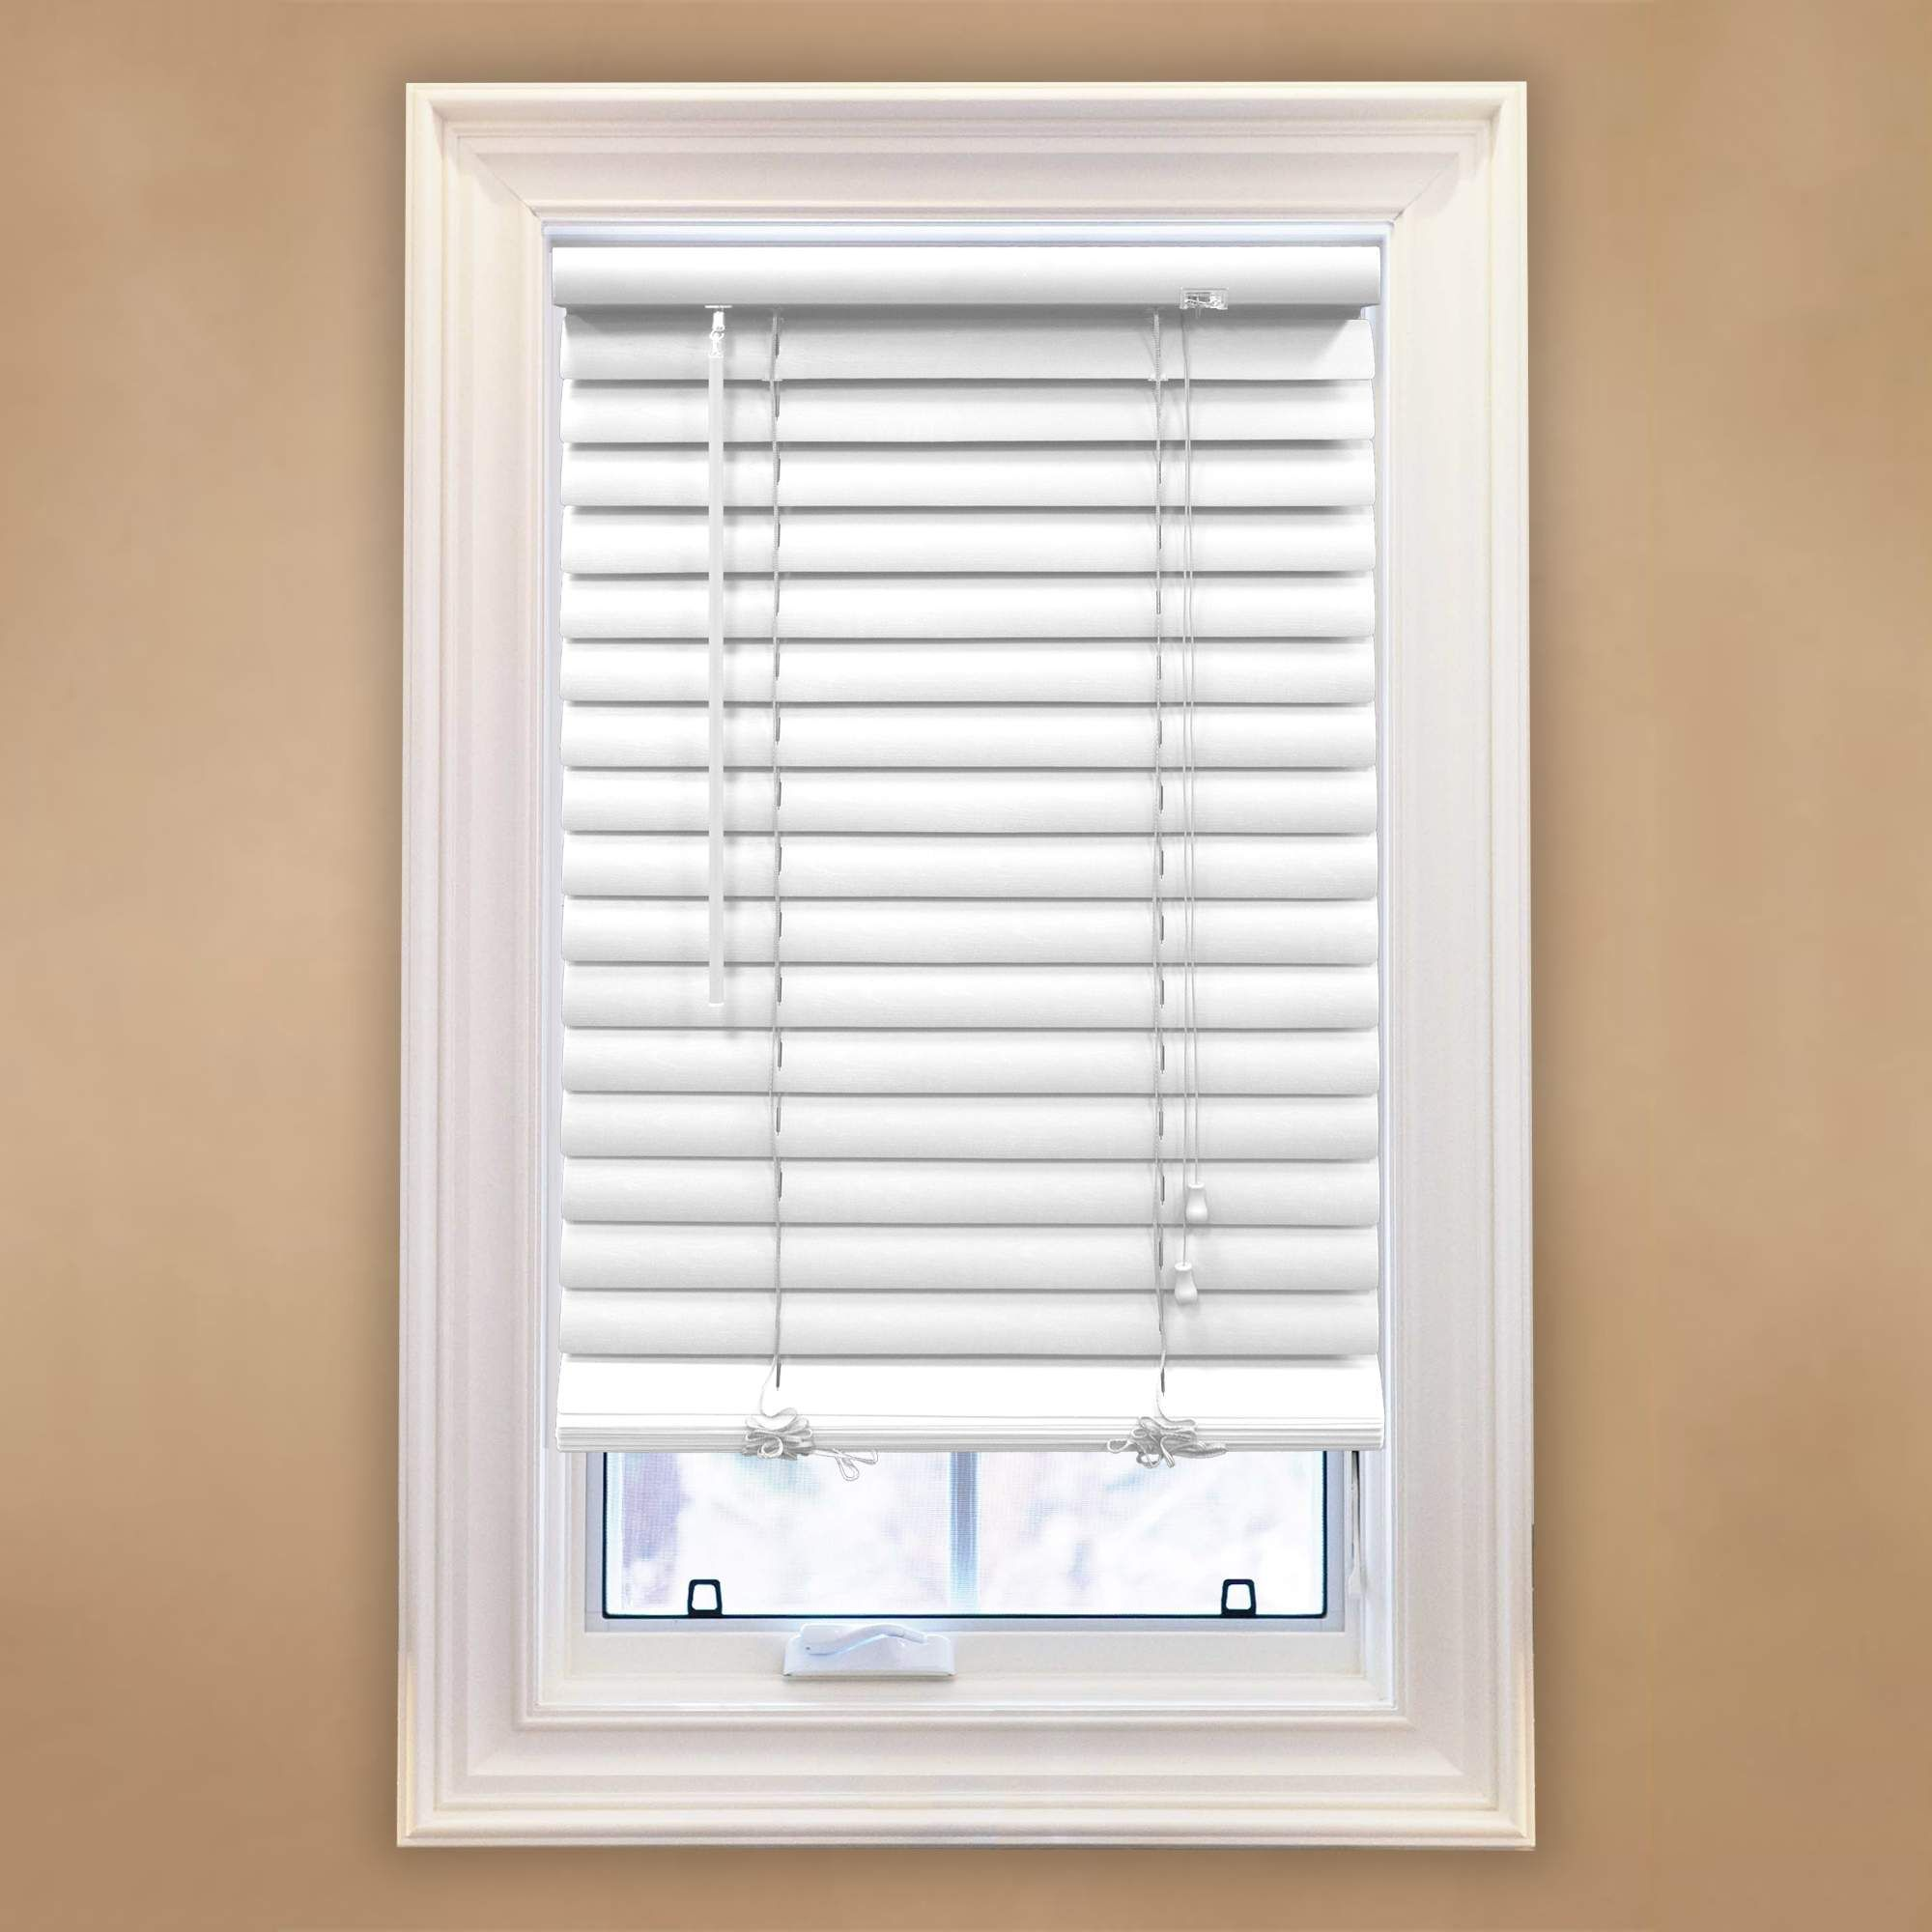 Secure Your Privacy By Using Room Darkening Blinds In 2020 Room